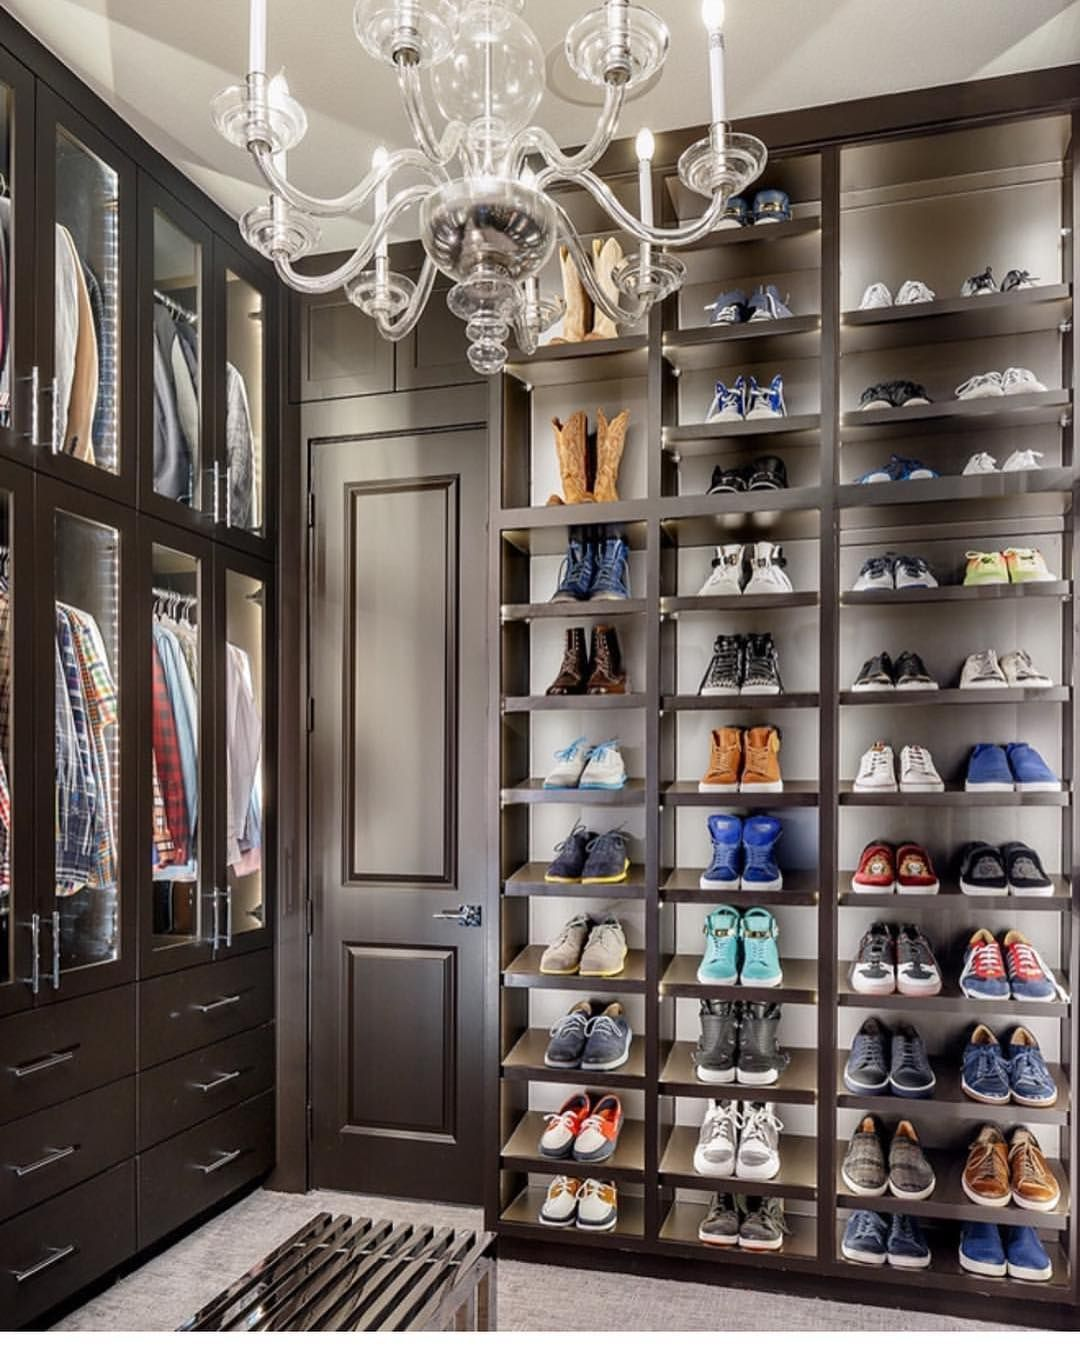 Closet goals = closet for my shoes Tag someone who wants this ...